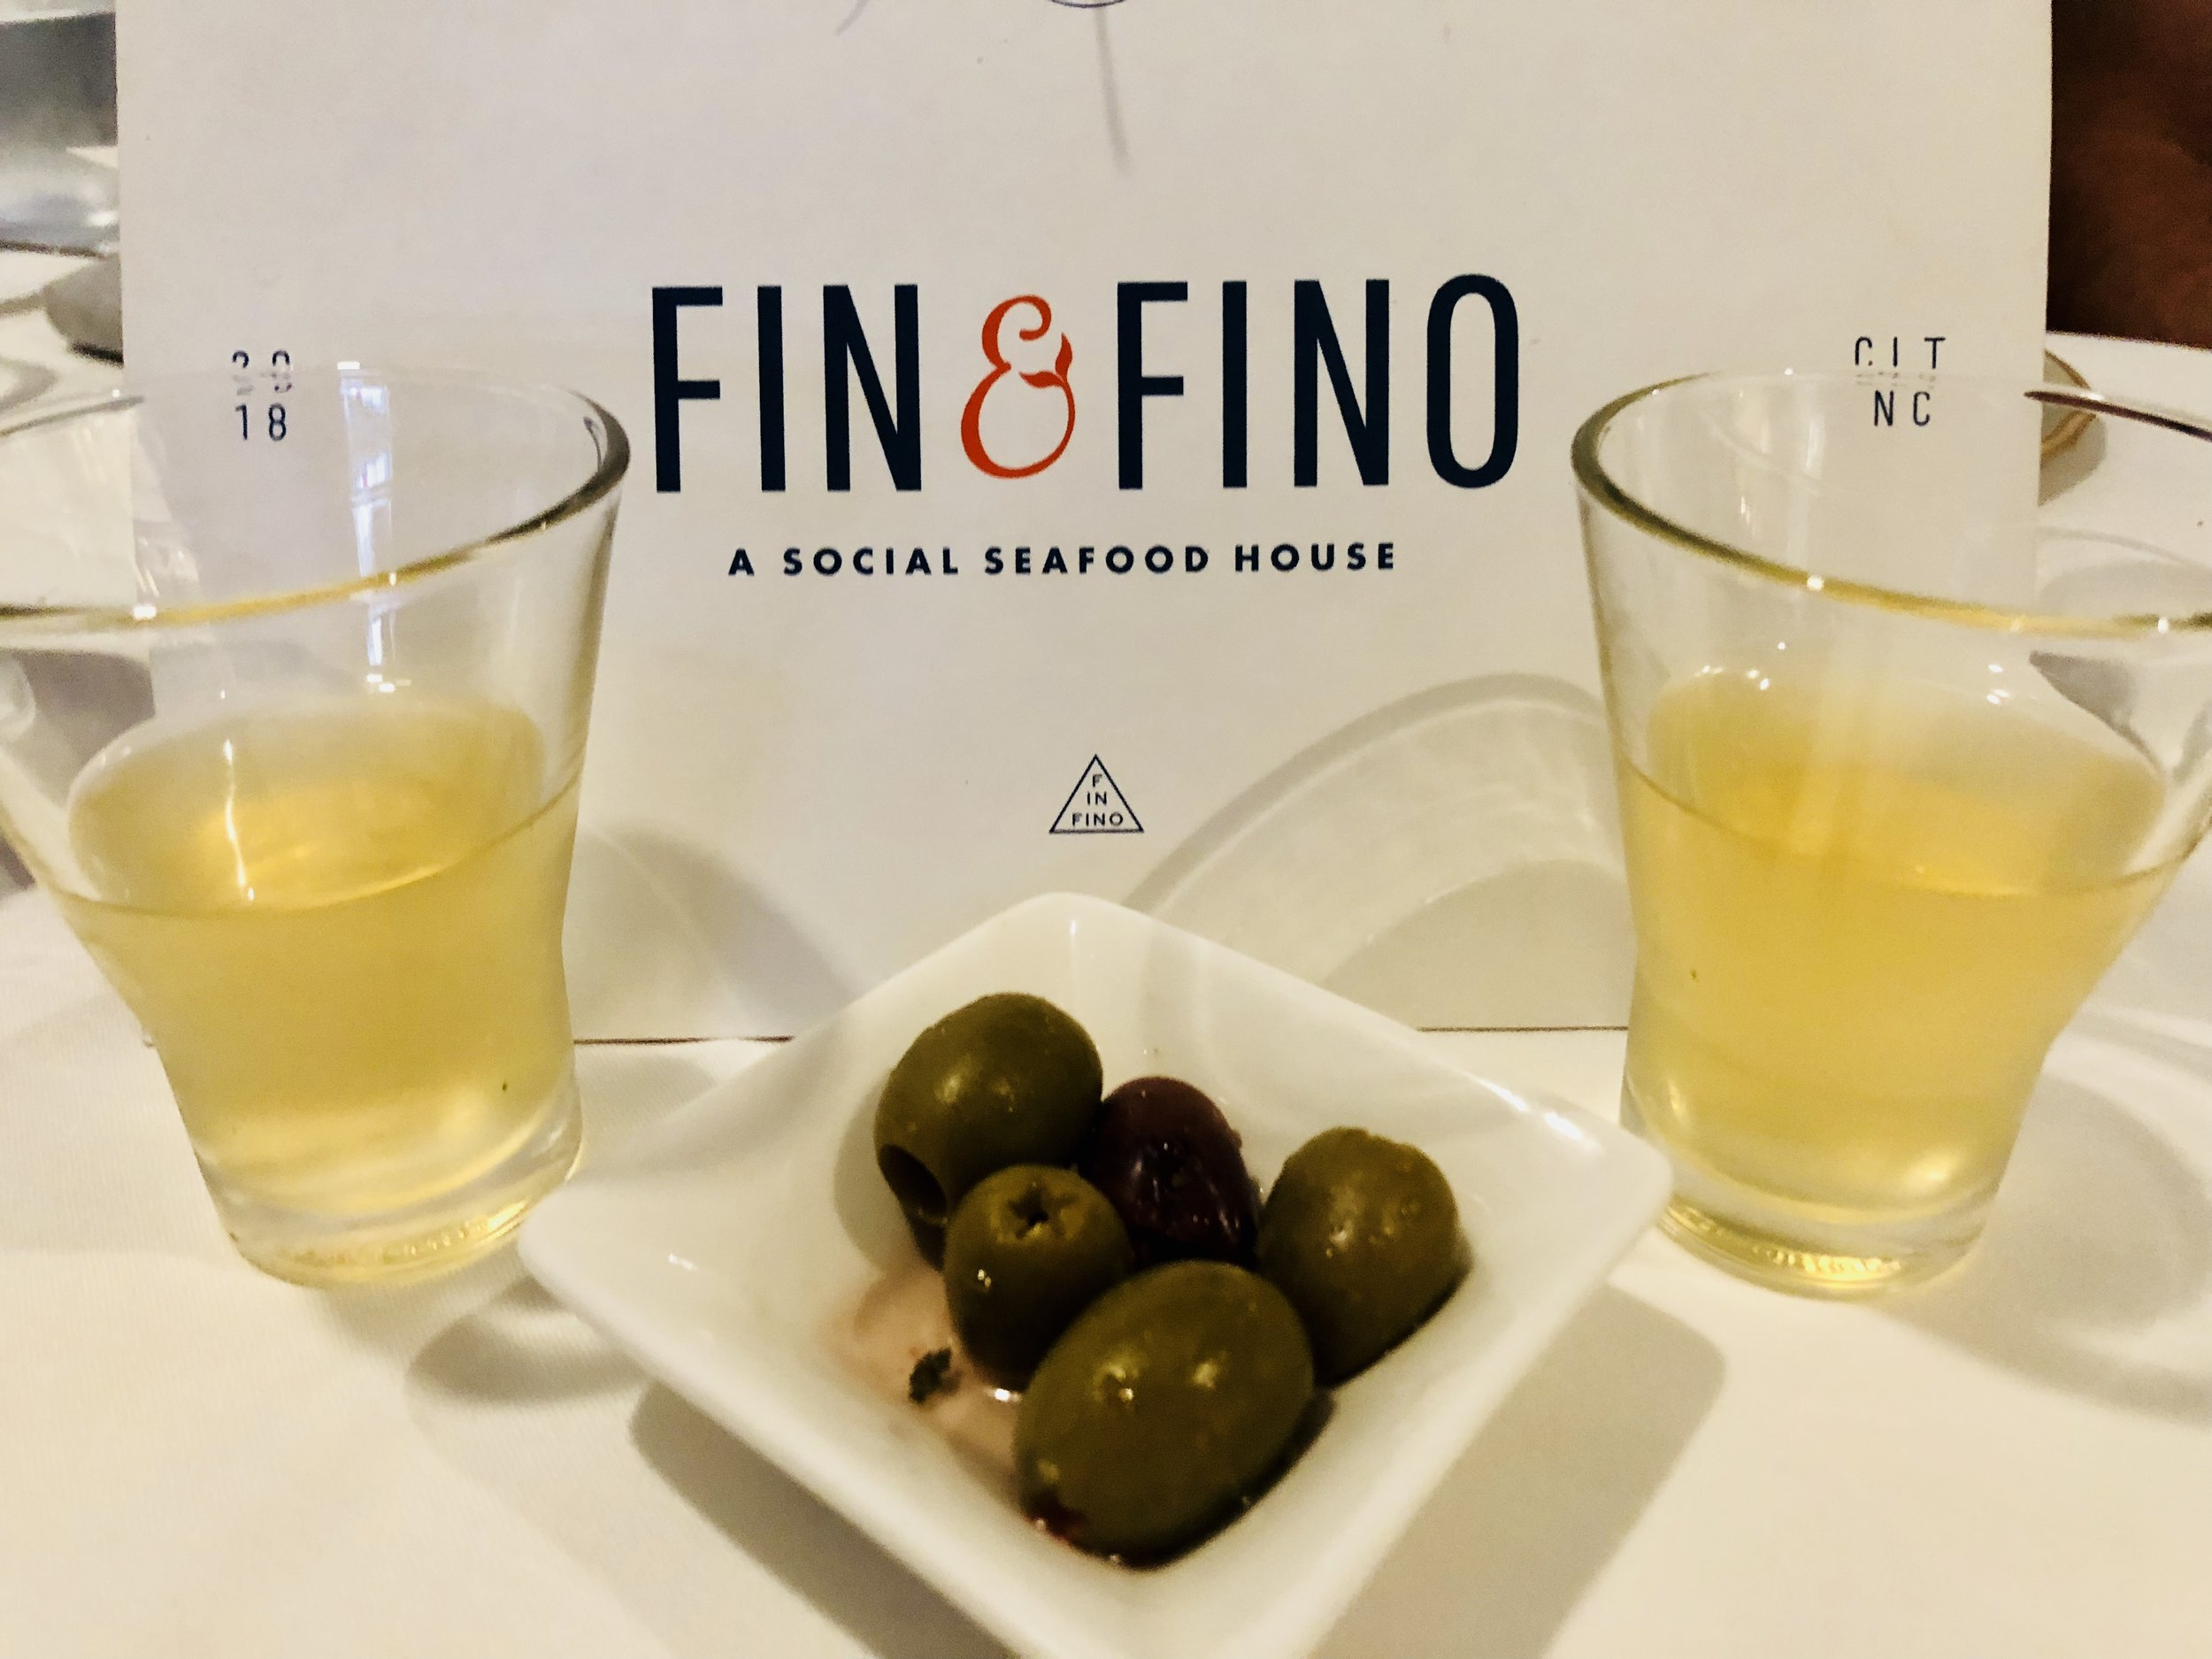 Sherry & Olives - an amuse-bouche for every table